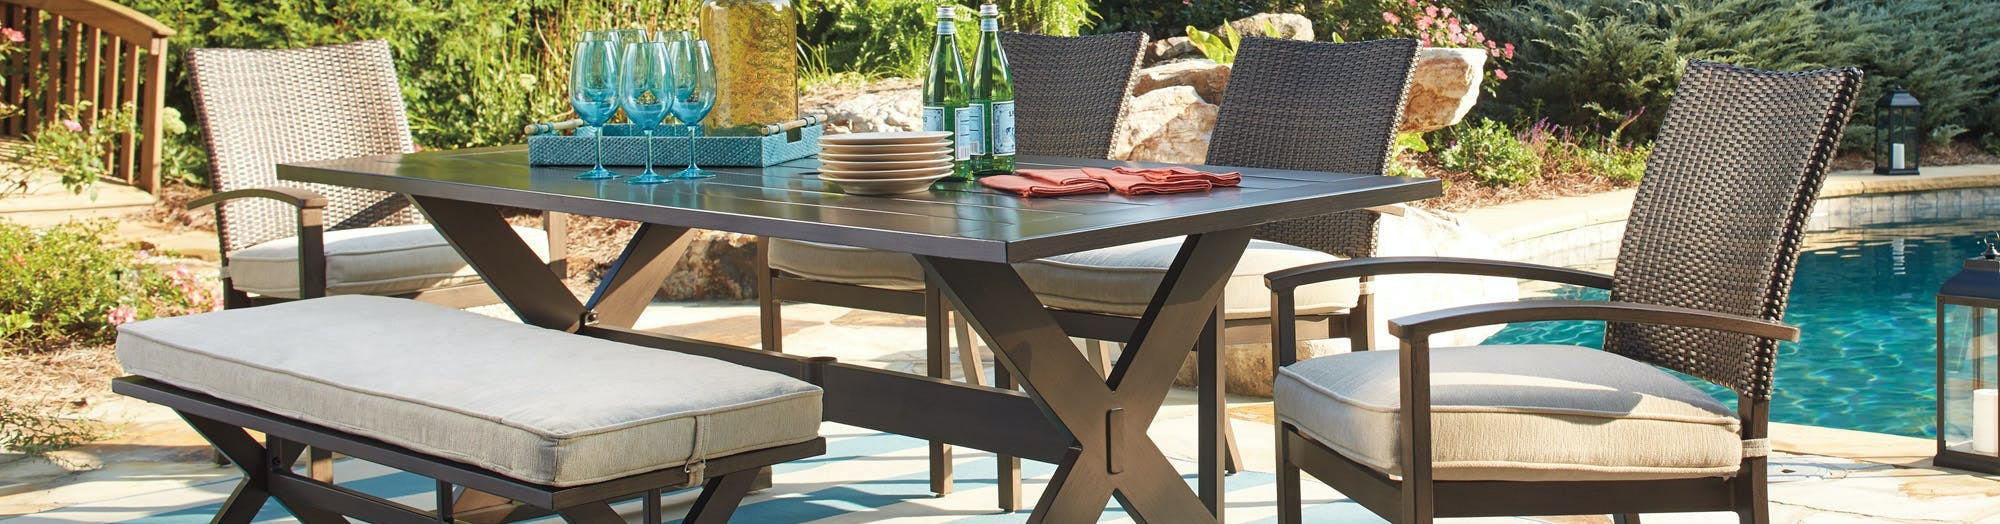 Shop For Outdoor Furniture In Cincinnati And Dayton OH